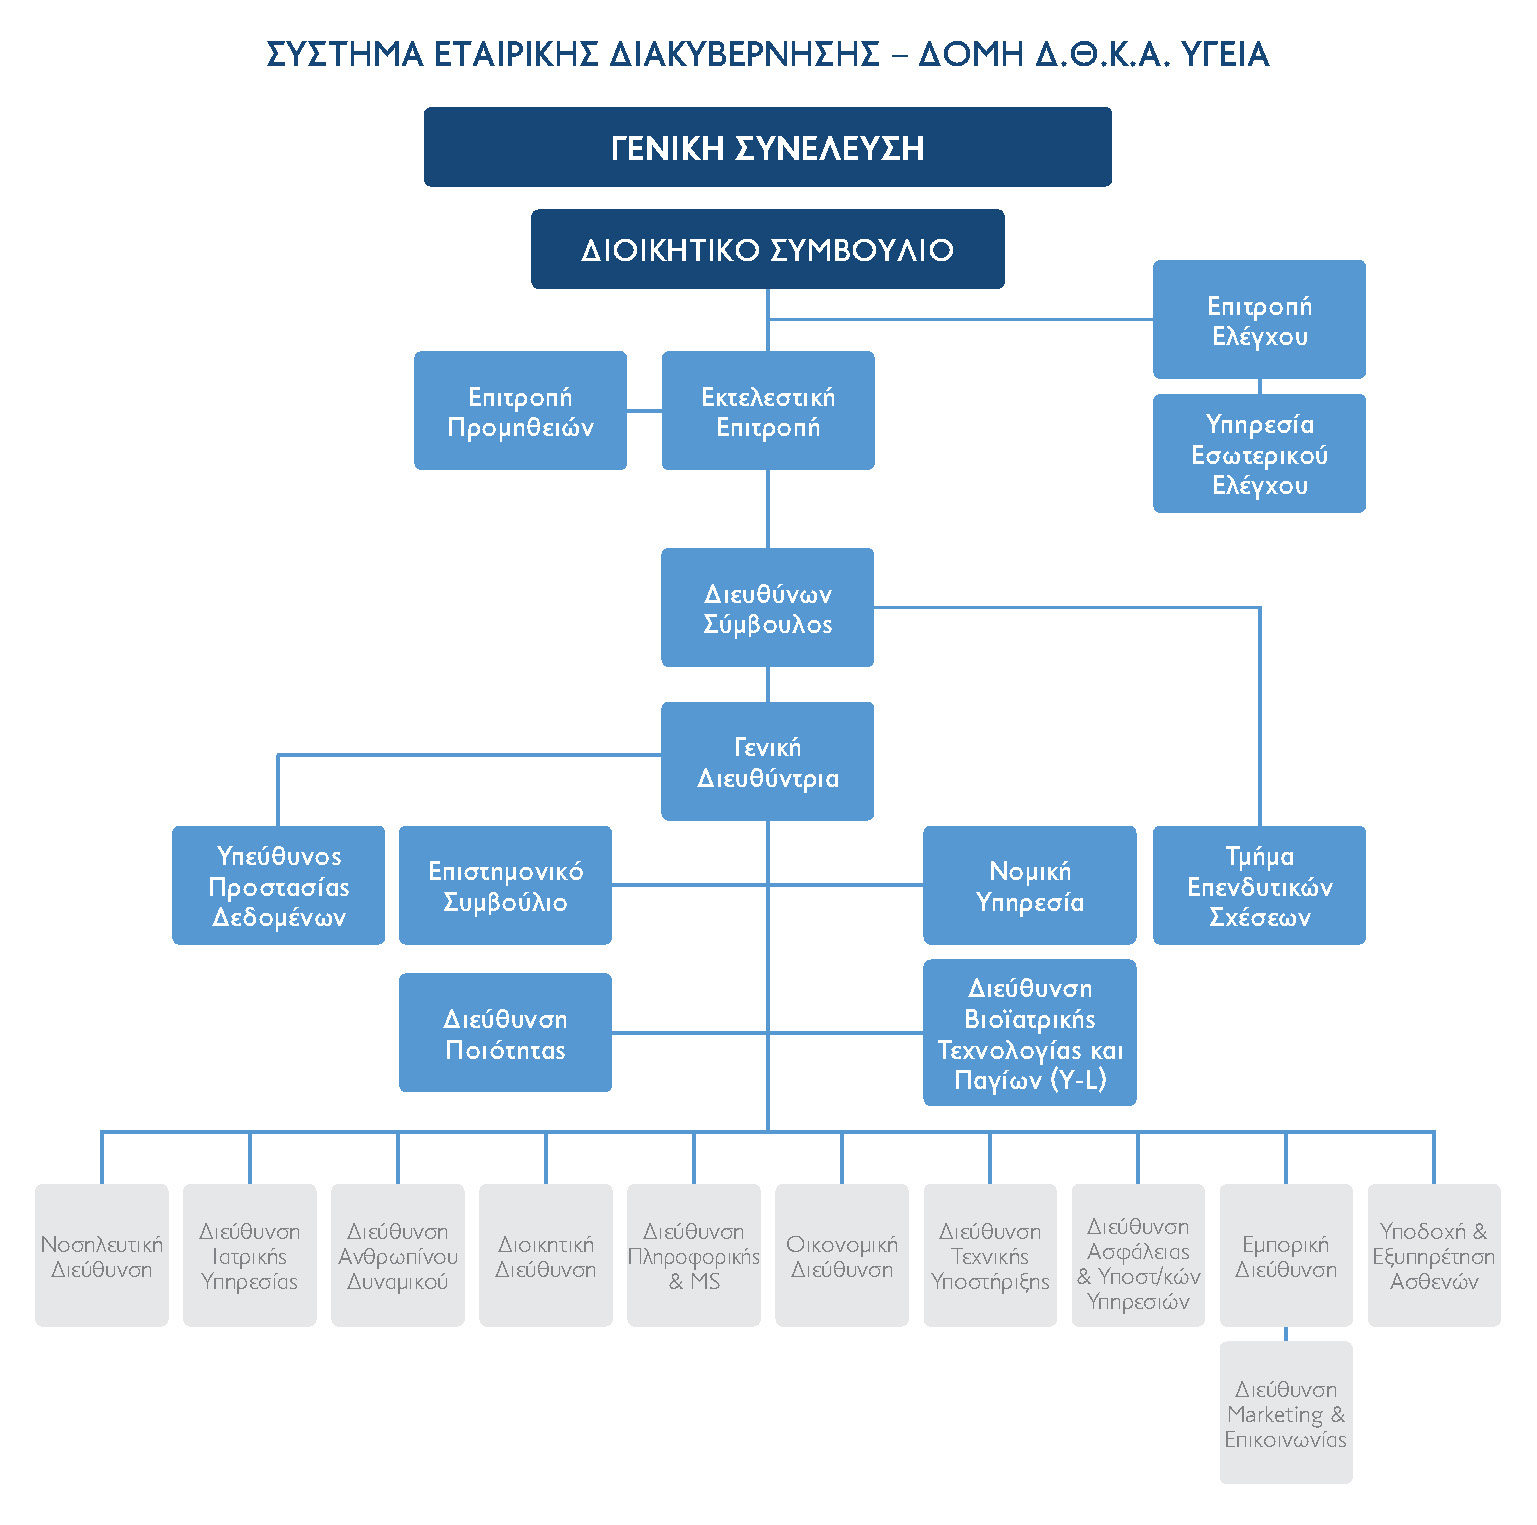 Kitchen Organizational Chart And Their Responsibilities: DTCA Hygeia Organizational Structure